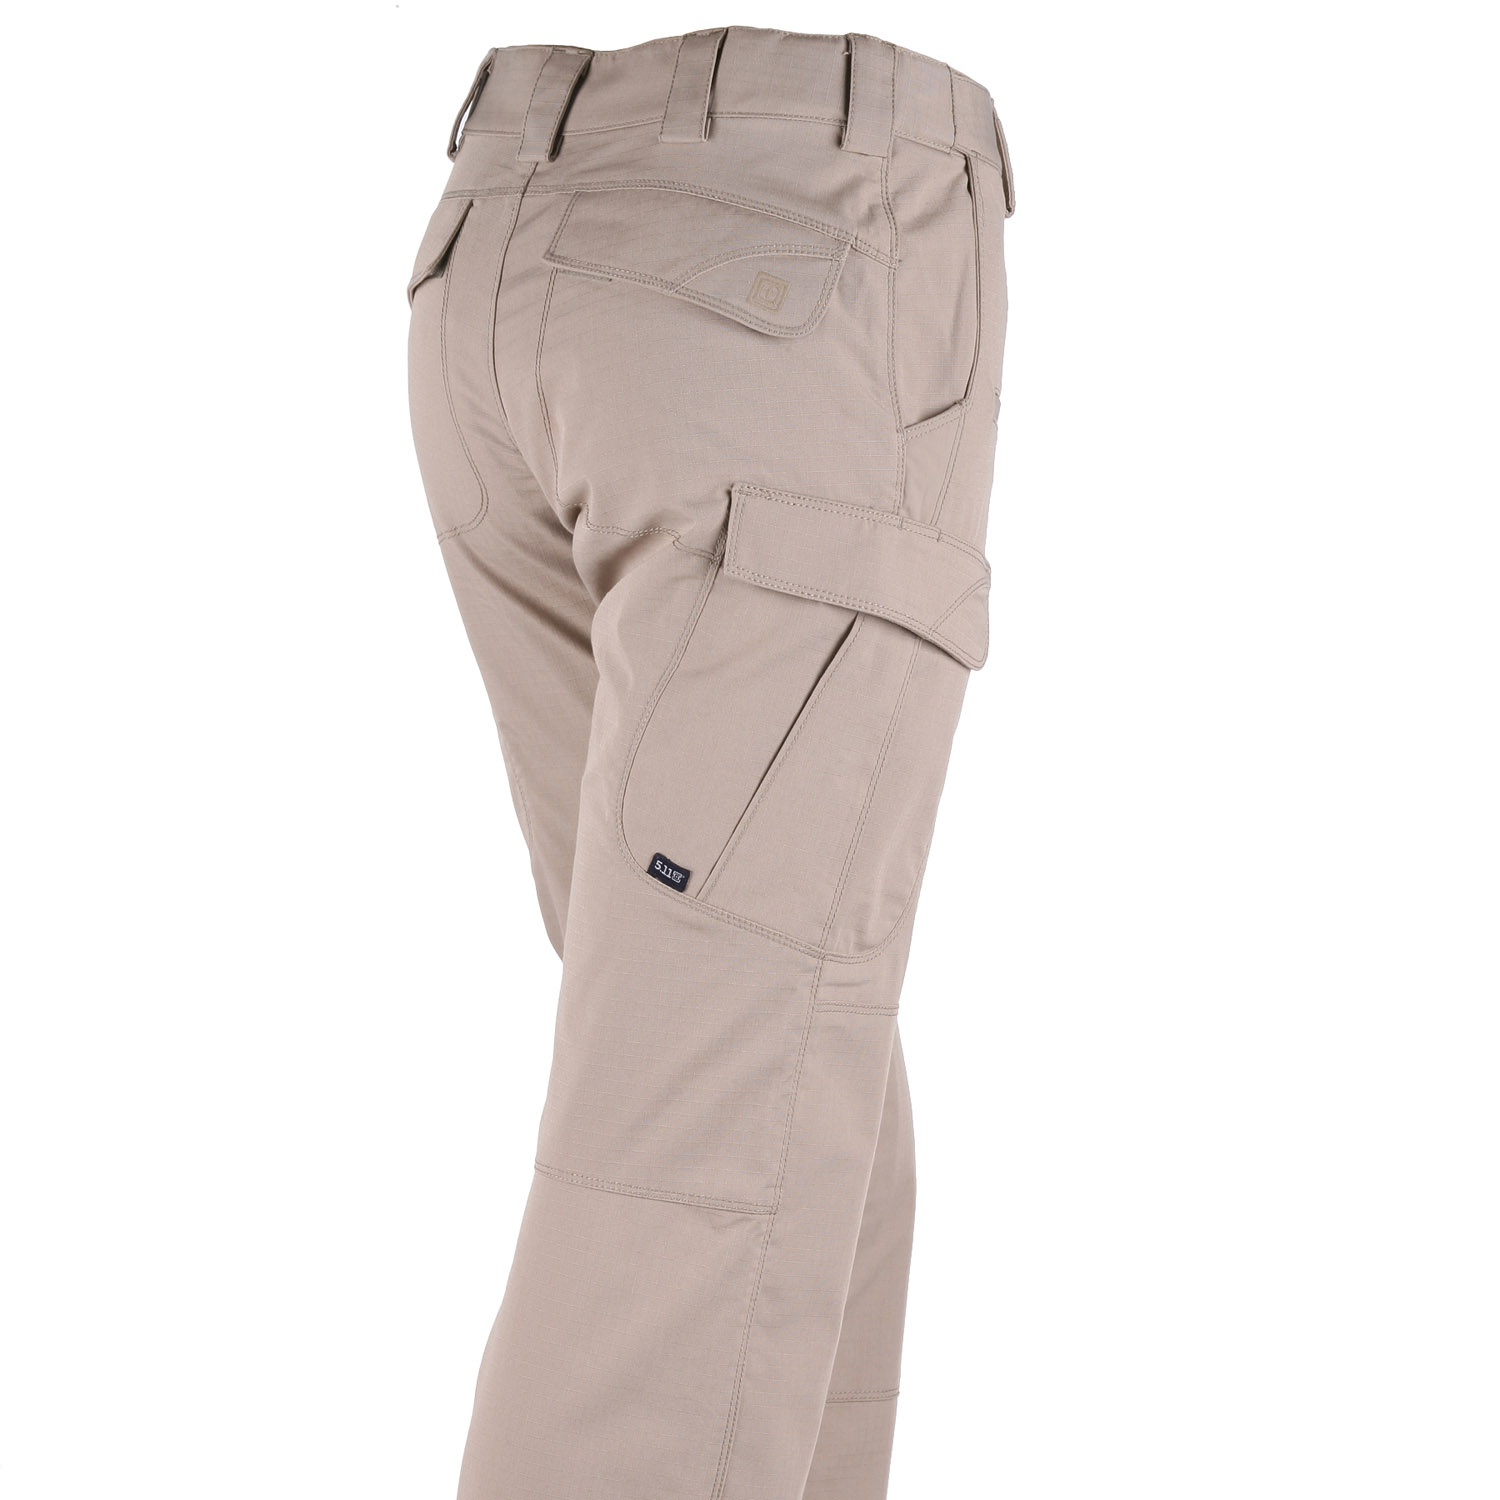 Women's Tactical Pants - Flextech Tactical Pants - 8823W - Blauer